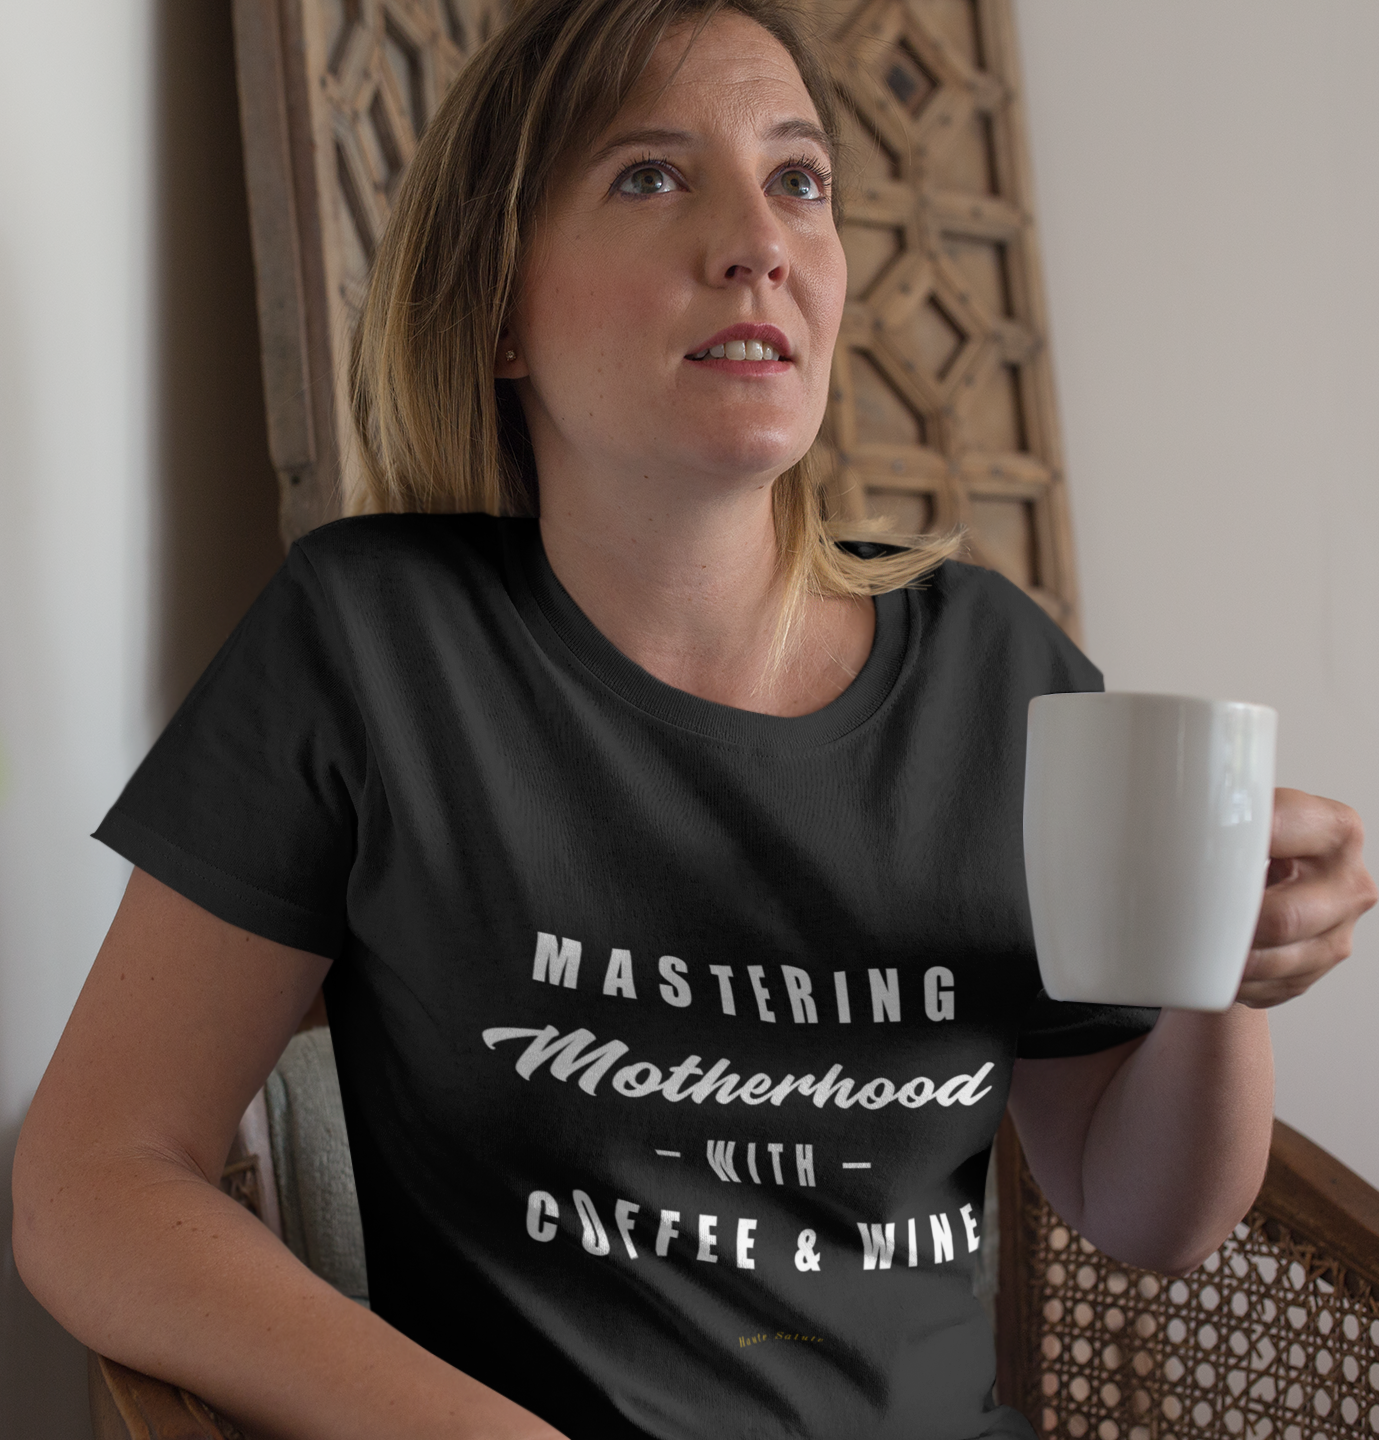 Mastering Motherhood T-shirt